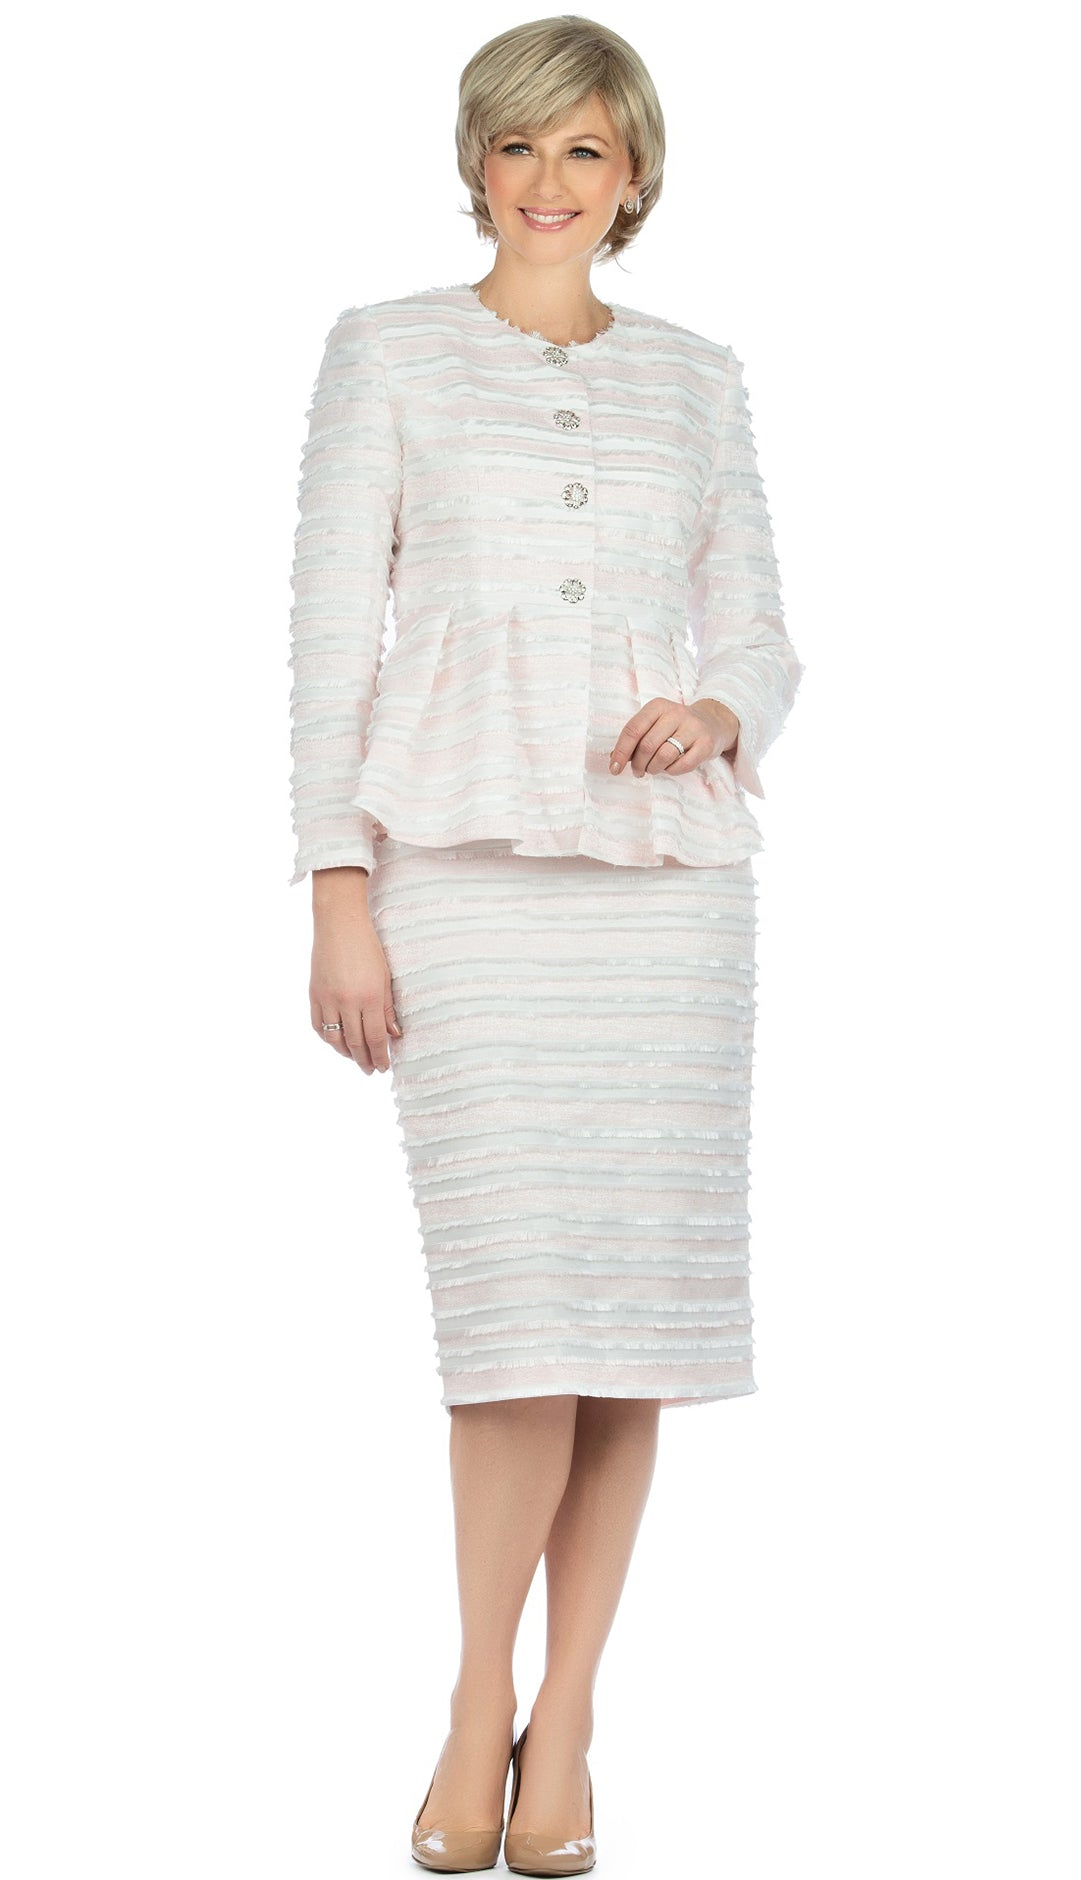 Giovanna Suit G1126-Pink/White - Church Suits For Less